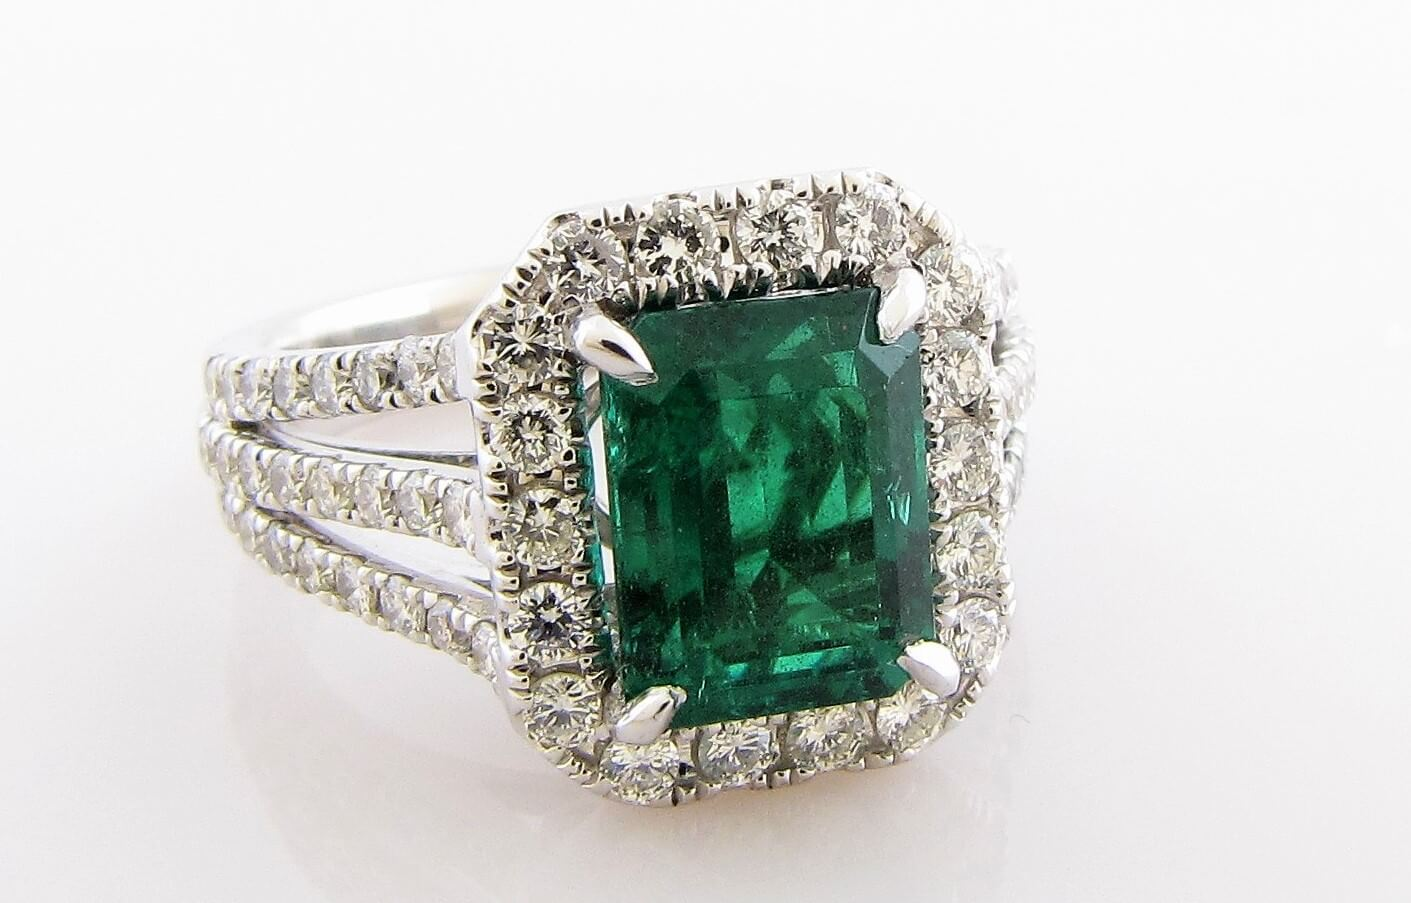 Consign Today for our March 28 Fine Art, Fine Jewelry Auction